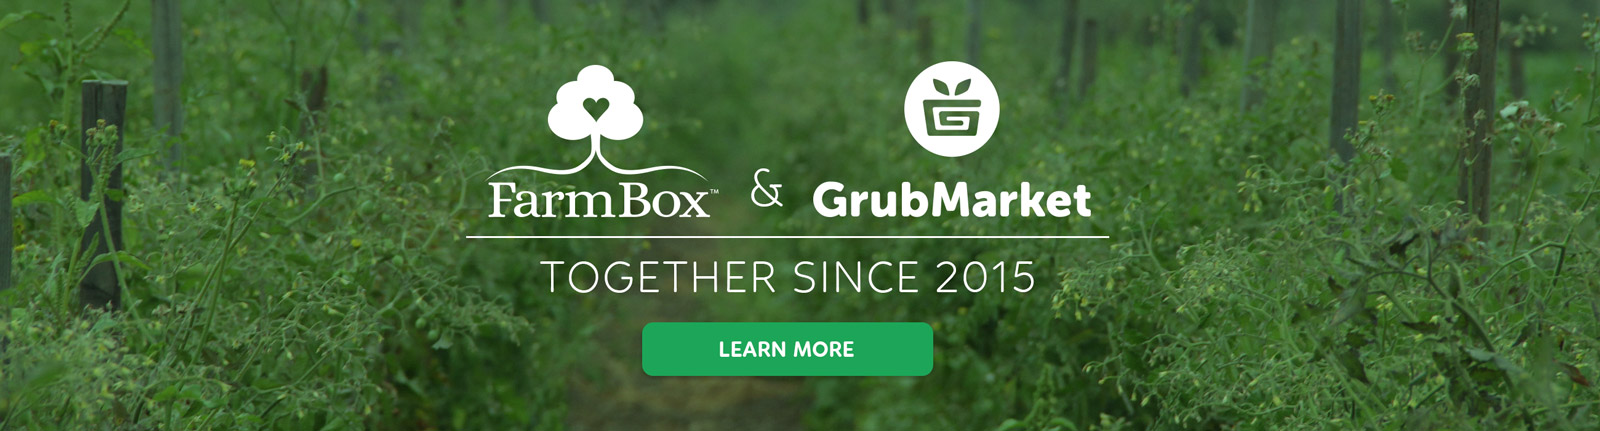 FarmBox is now GrubMarket